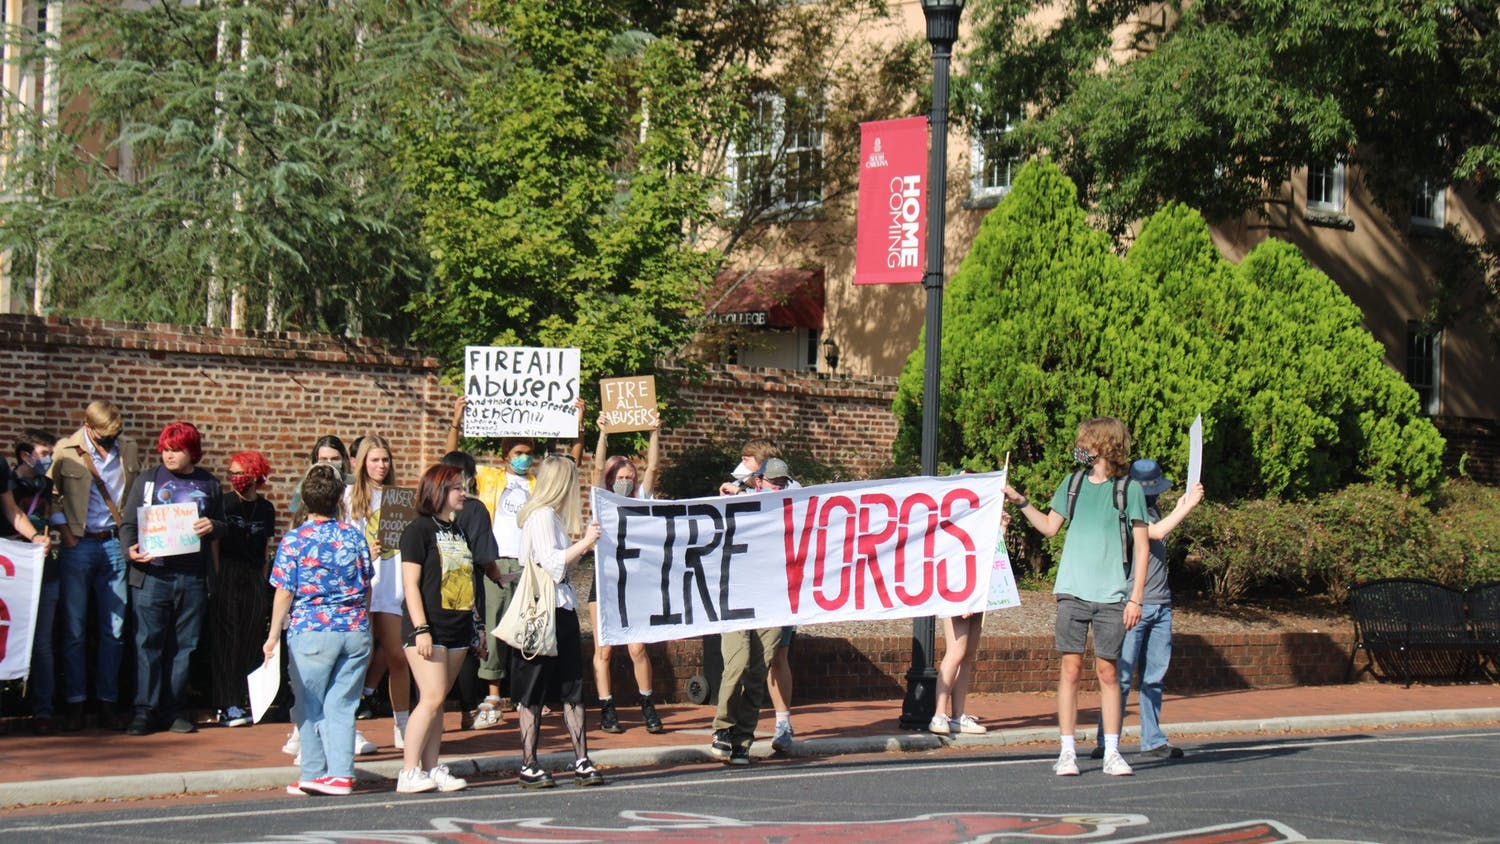 """USC Student protesters in front of Russell House on Greene Street in protest to fire Voros and others accused of sexual misconduct. Two people are holding a sign that said """"Fire Voros."""""""